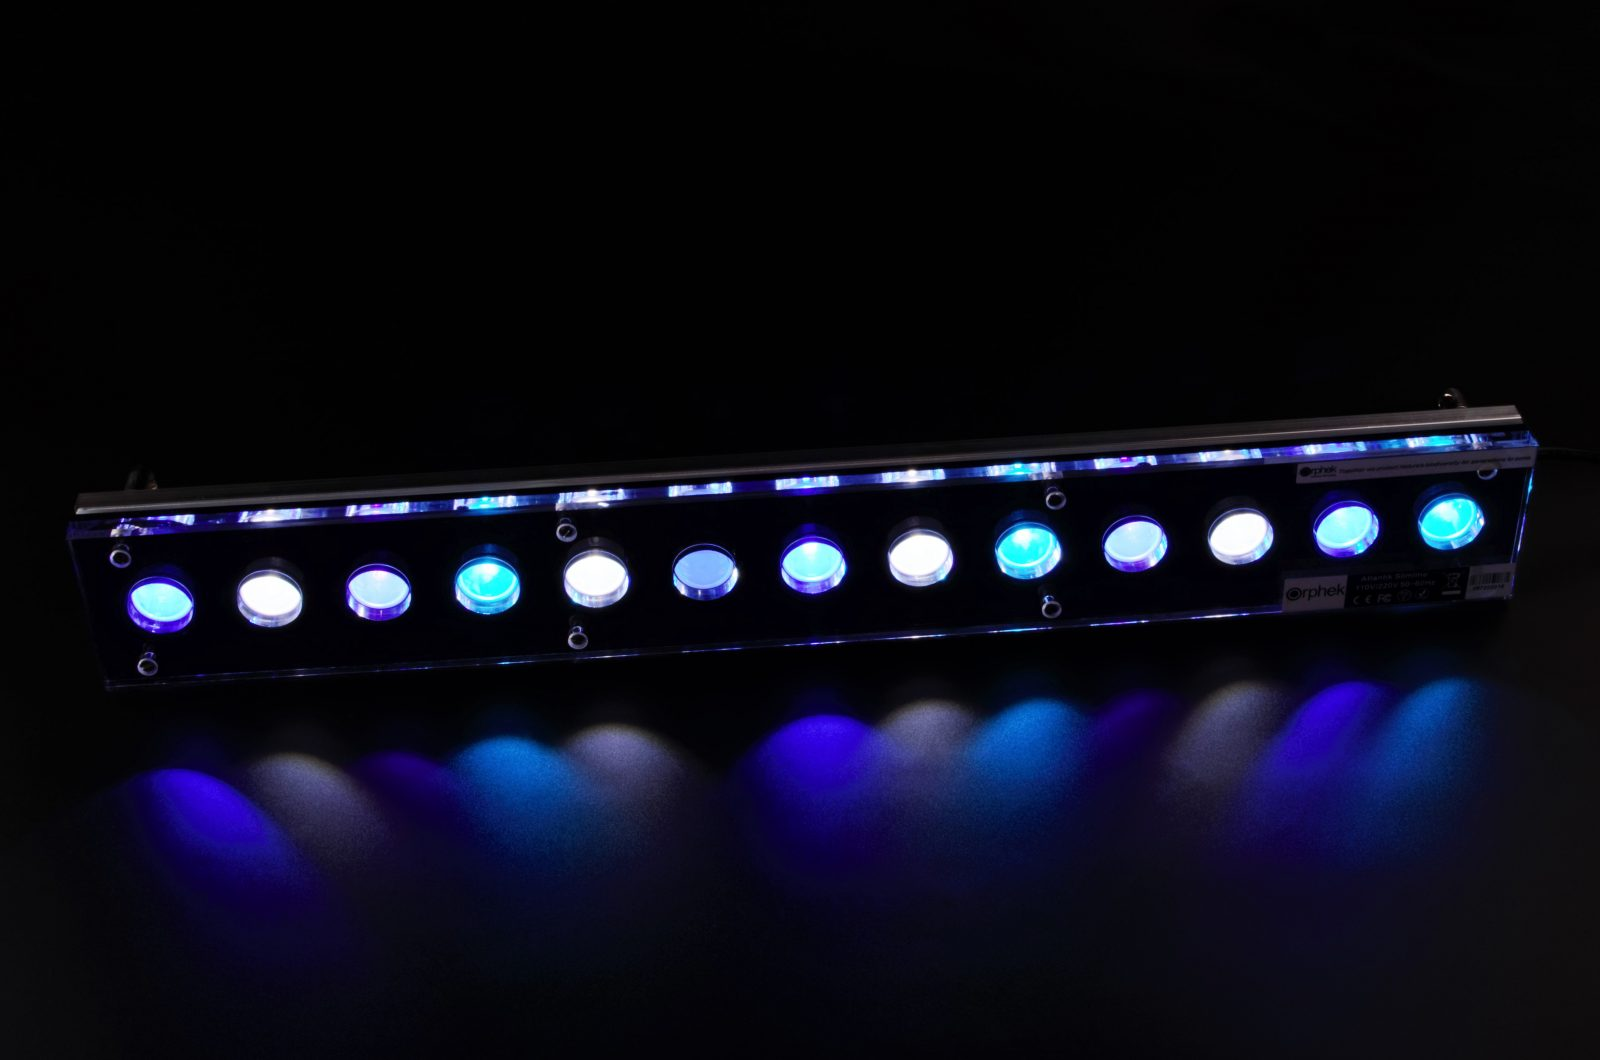 Orphek-Aquarium-LED-Light-Atlantik-Slimline-V4-Риф